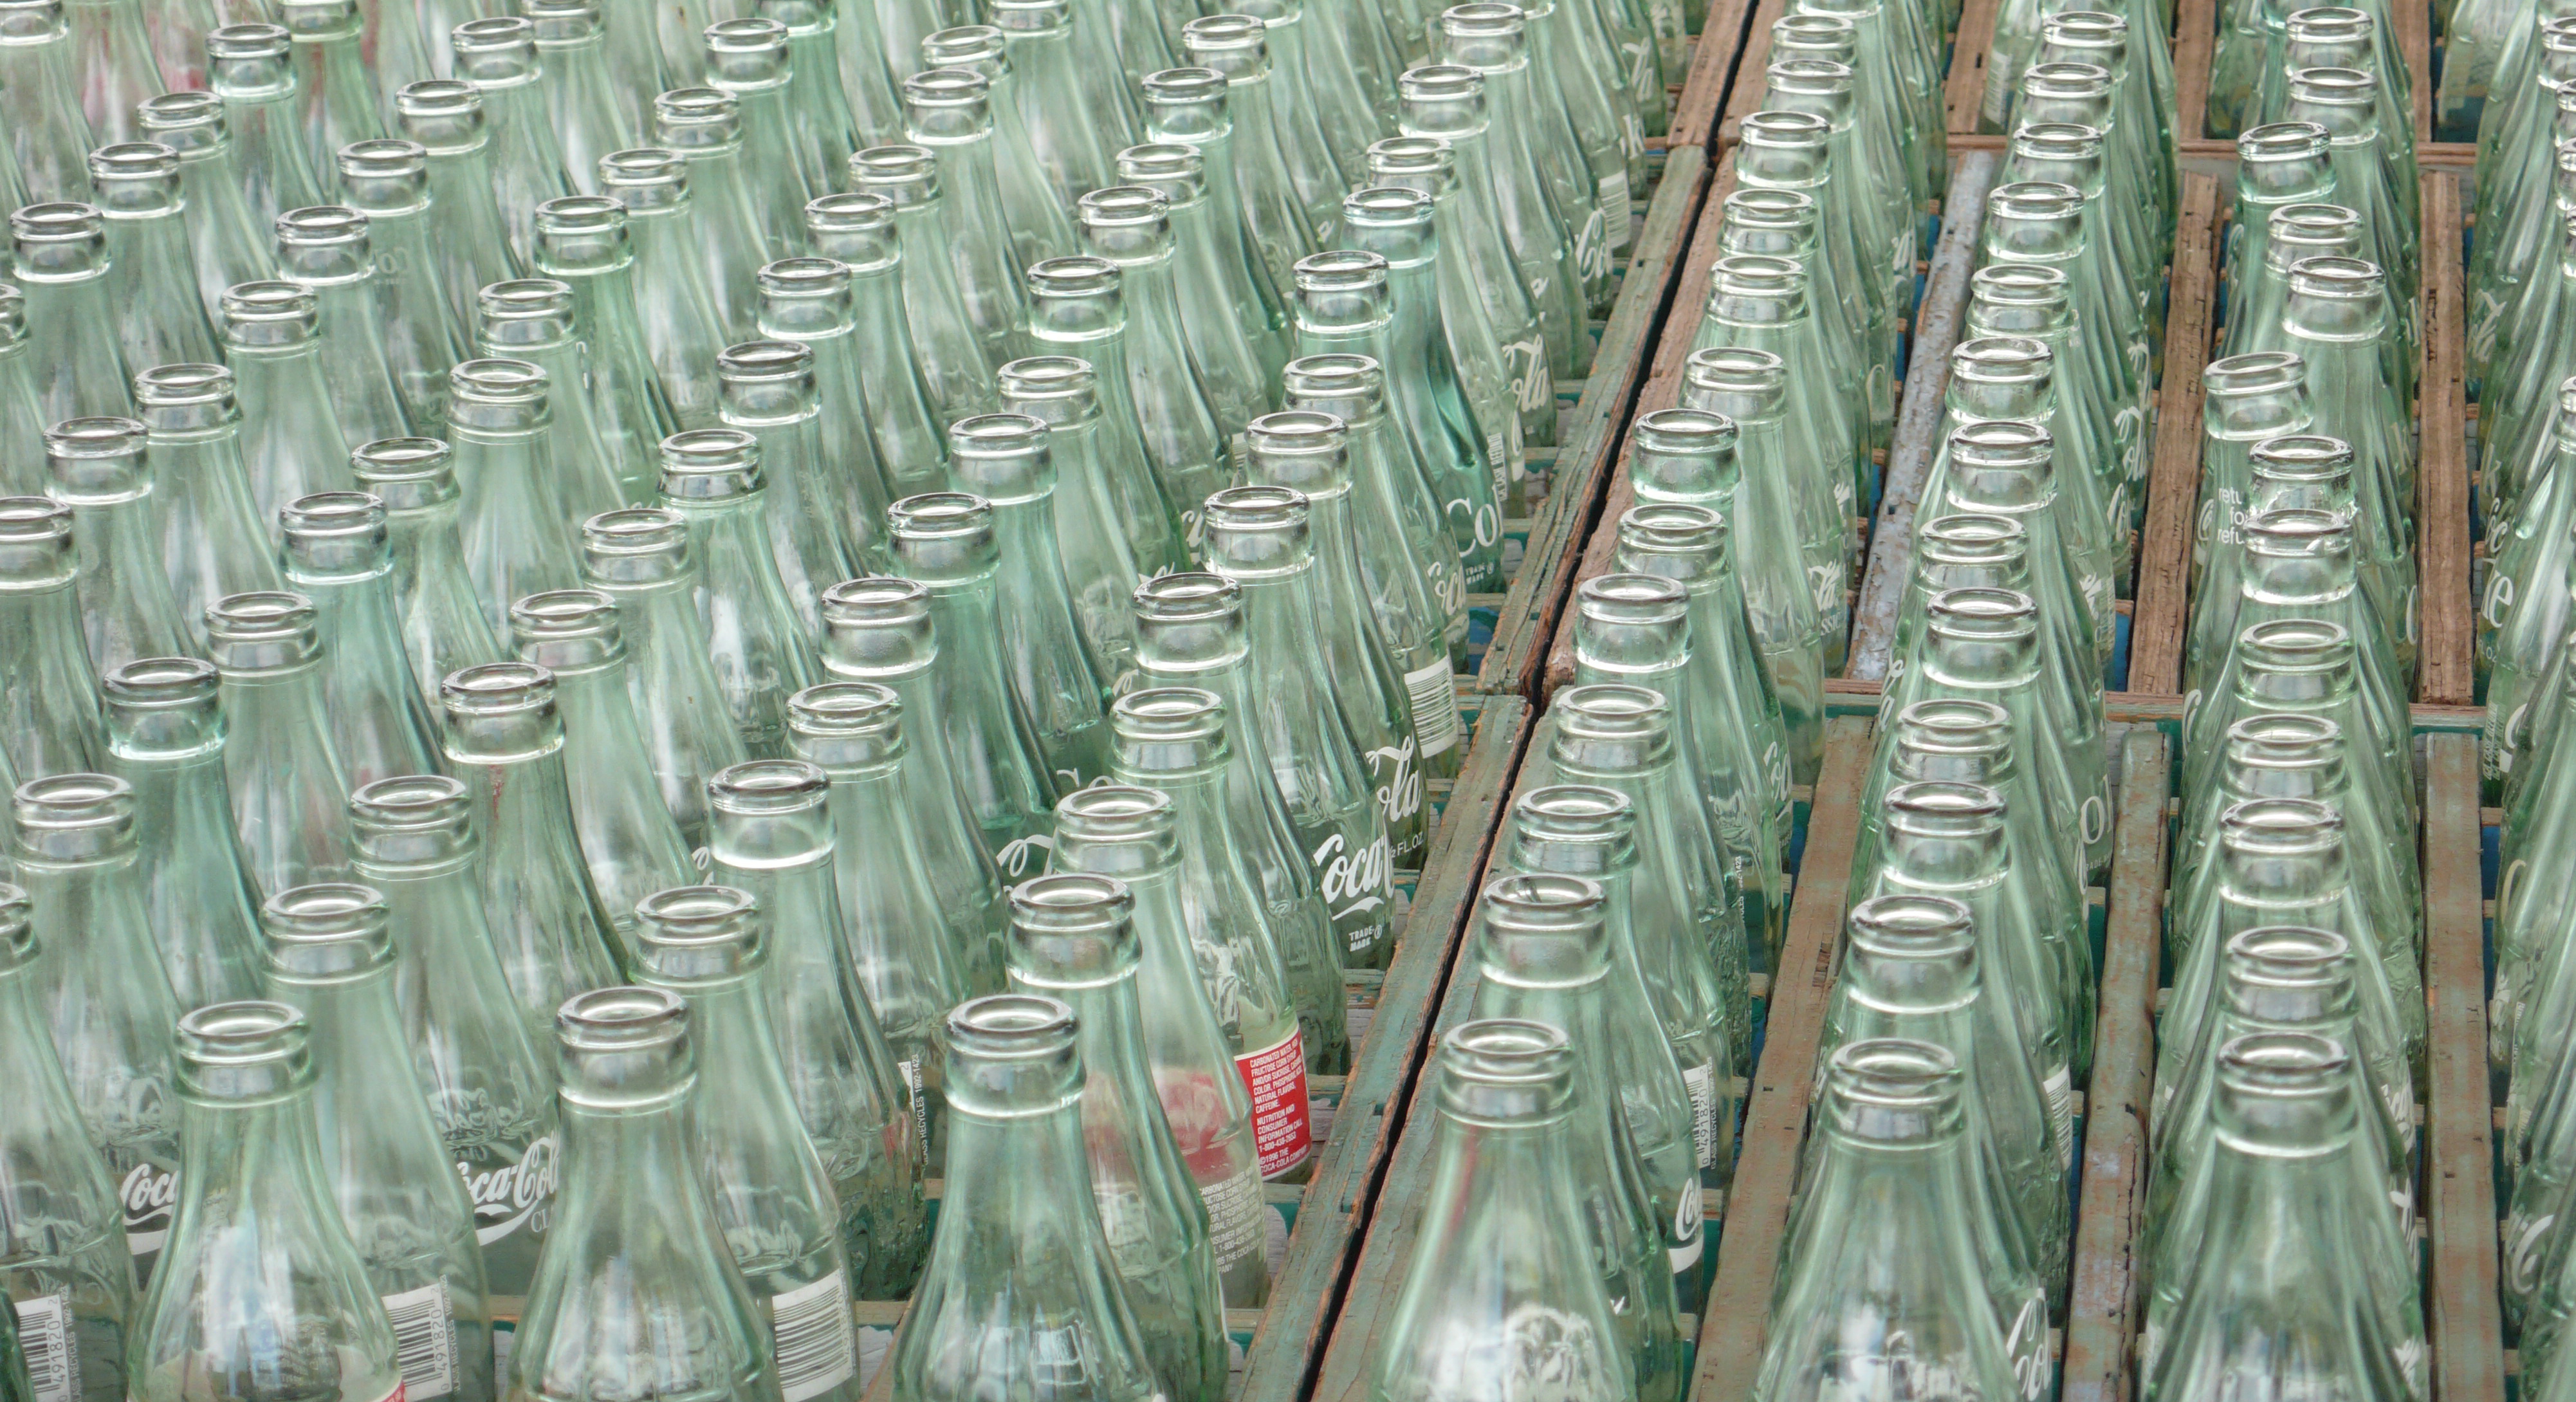 Why One Research University Gave $1 Million Back to Coca-Cola